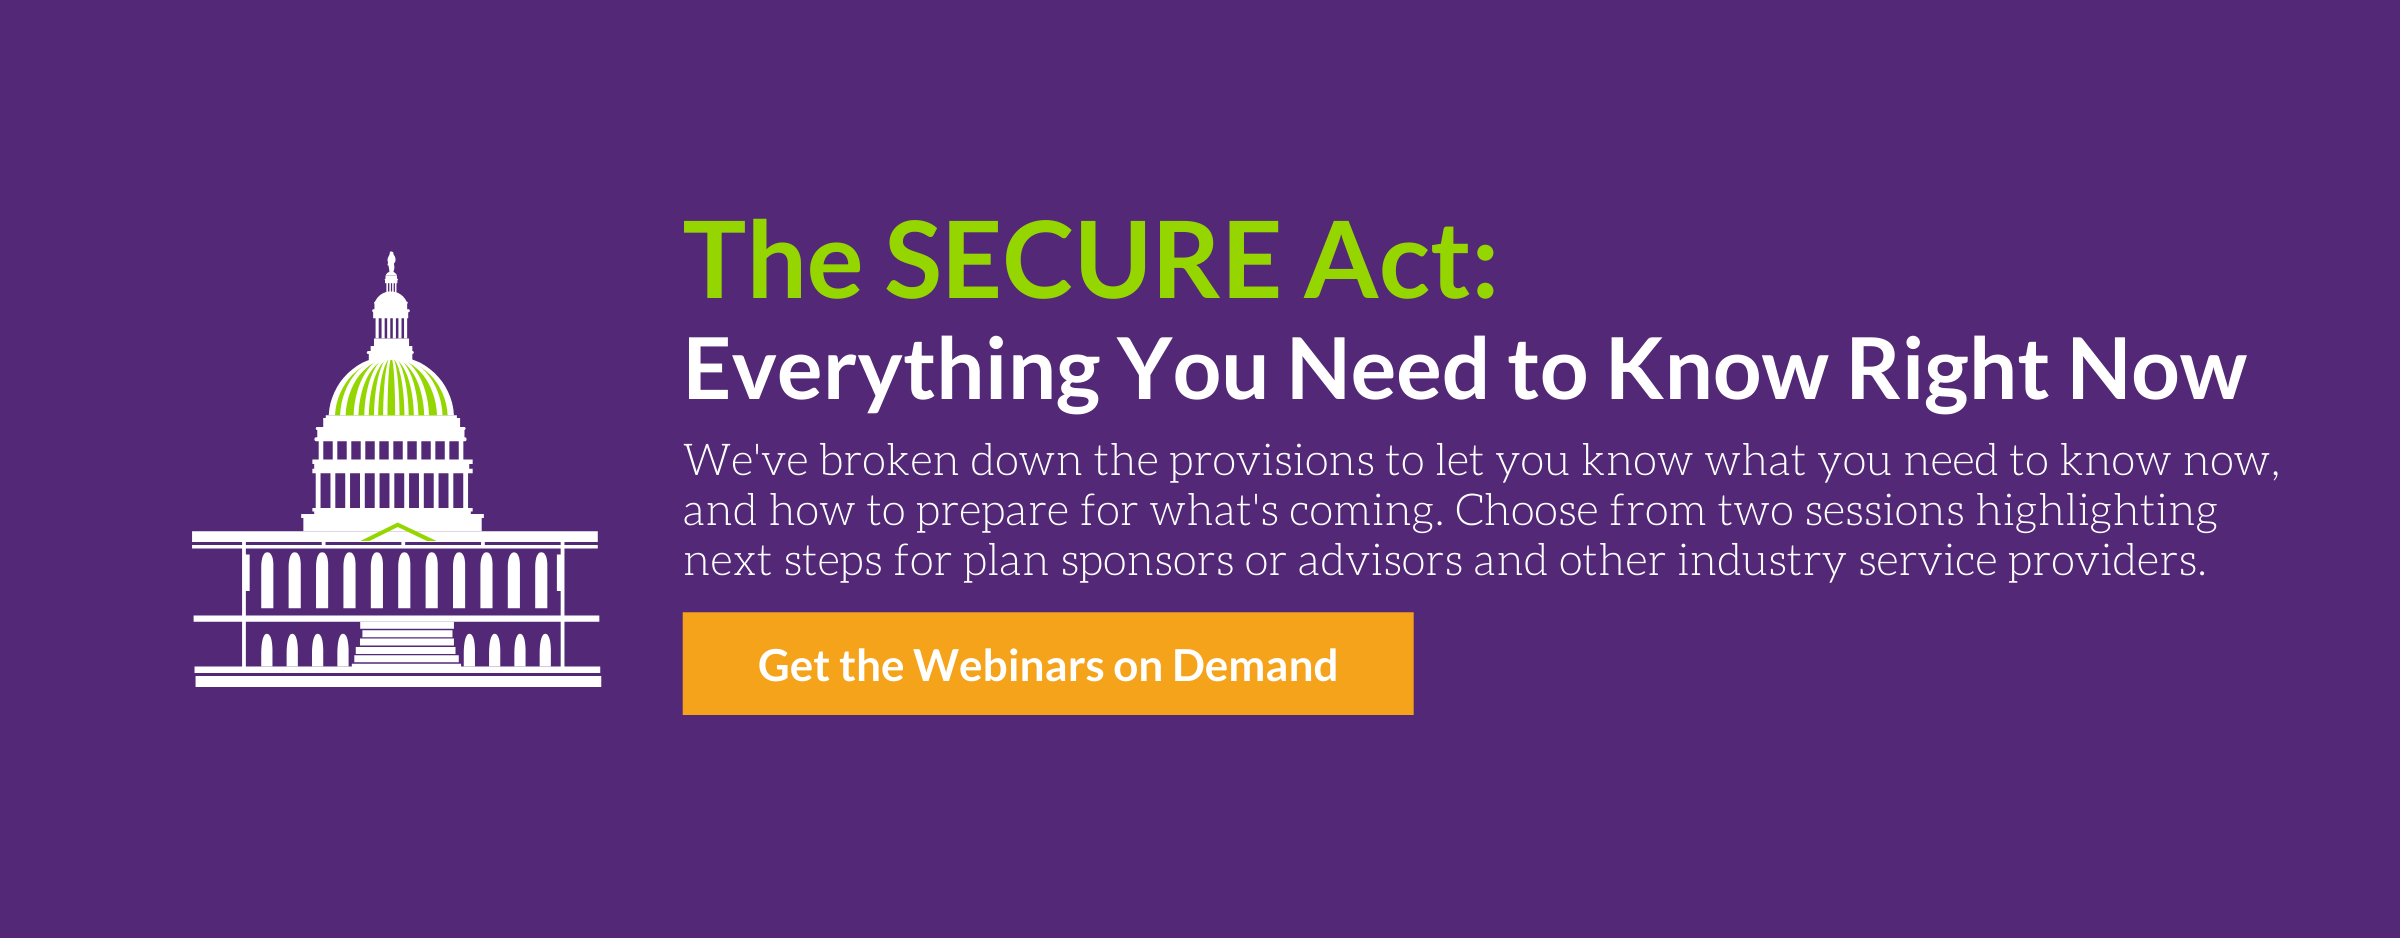 The SECURE Act: A 2 Part Webinar Series - Download it on Demand